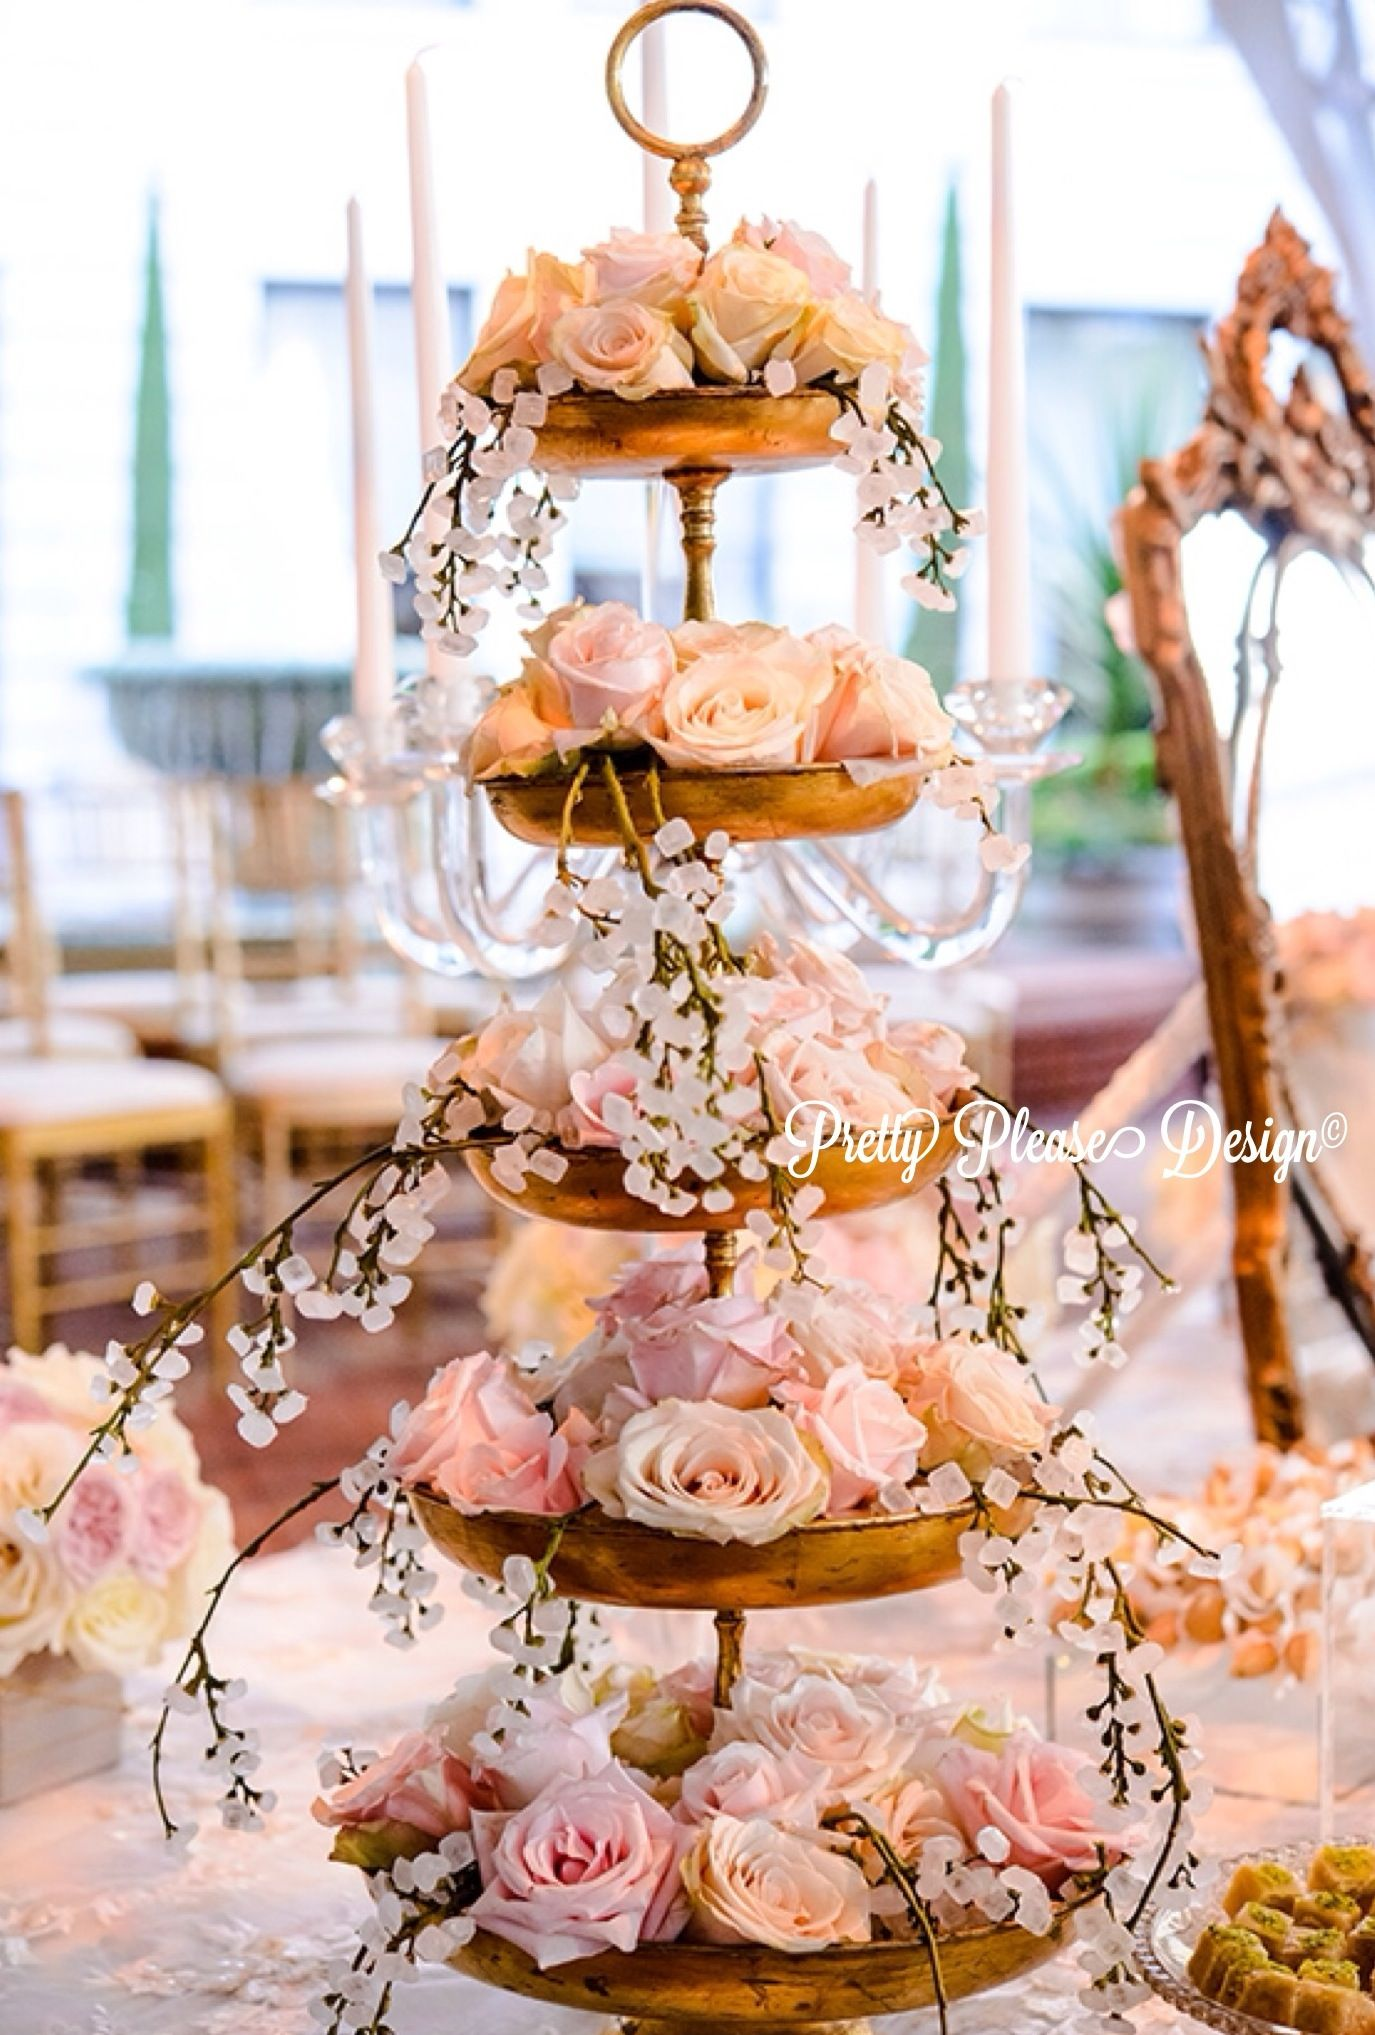 Pretty please sofreh aghd styling design wedding for Persian wedding ceremony table